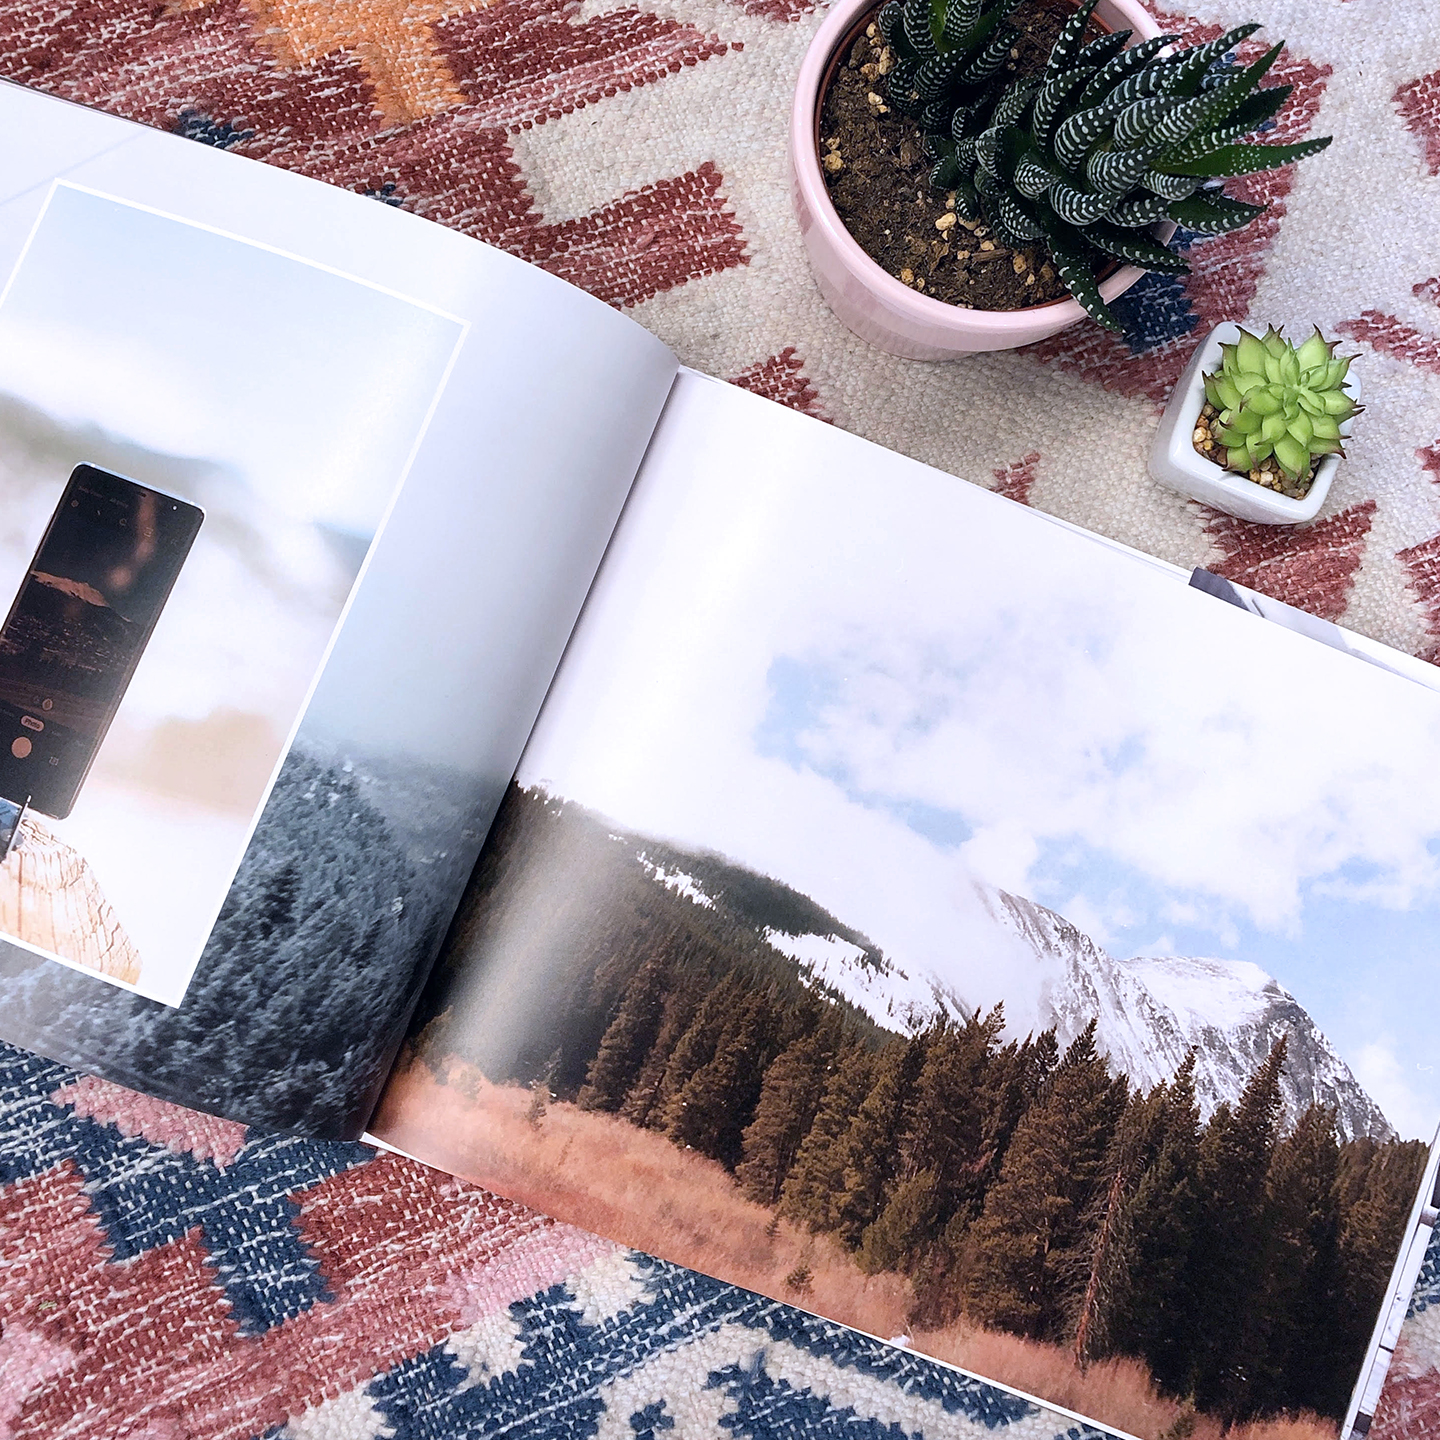 Print industry leading quality photo books using our web browser platform